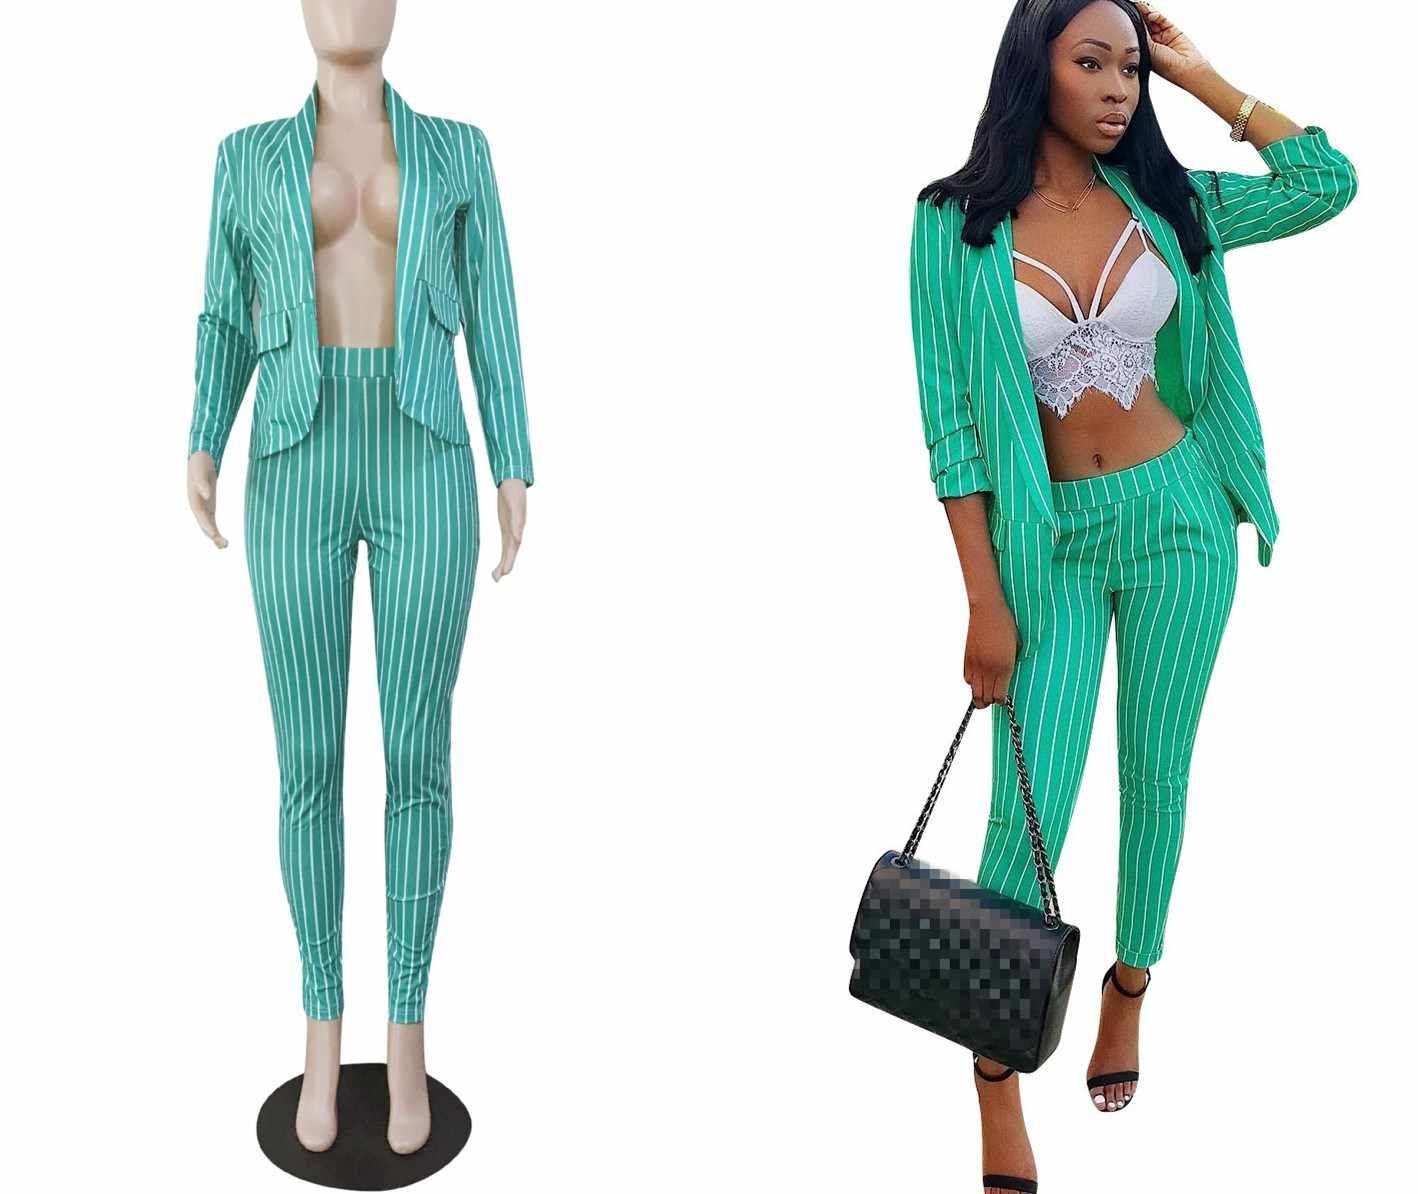 e6ef5d06efe 2019 Women Notched Neck Two Piece Suits Safari Style Elegant Striped Blazers  Pants Sets Long Sleeve